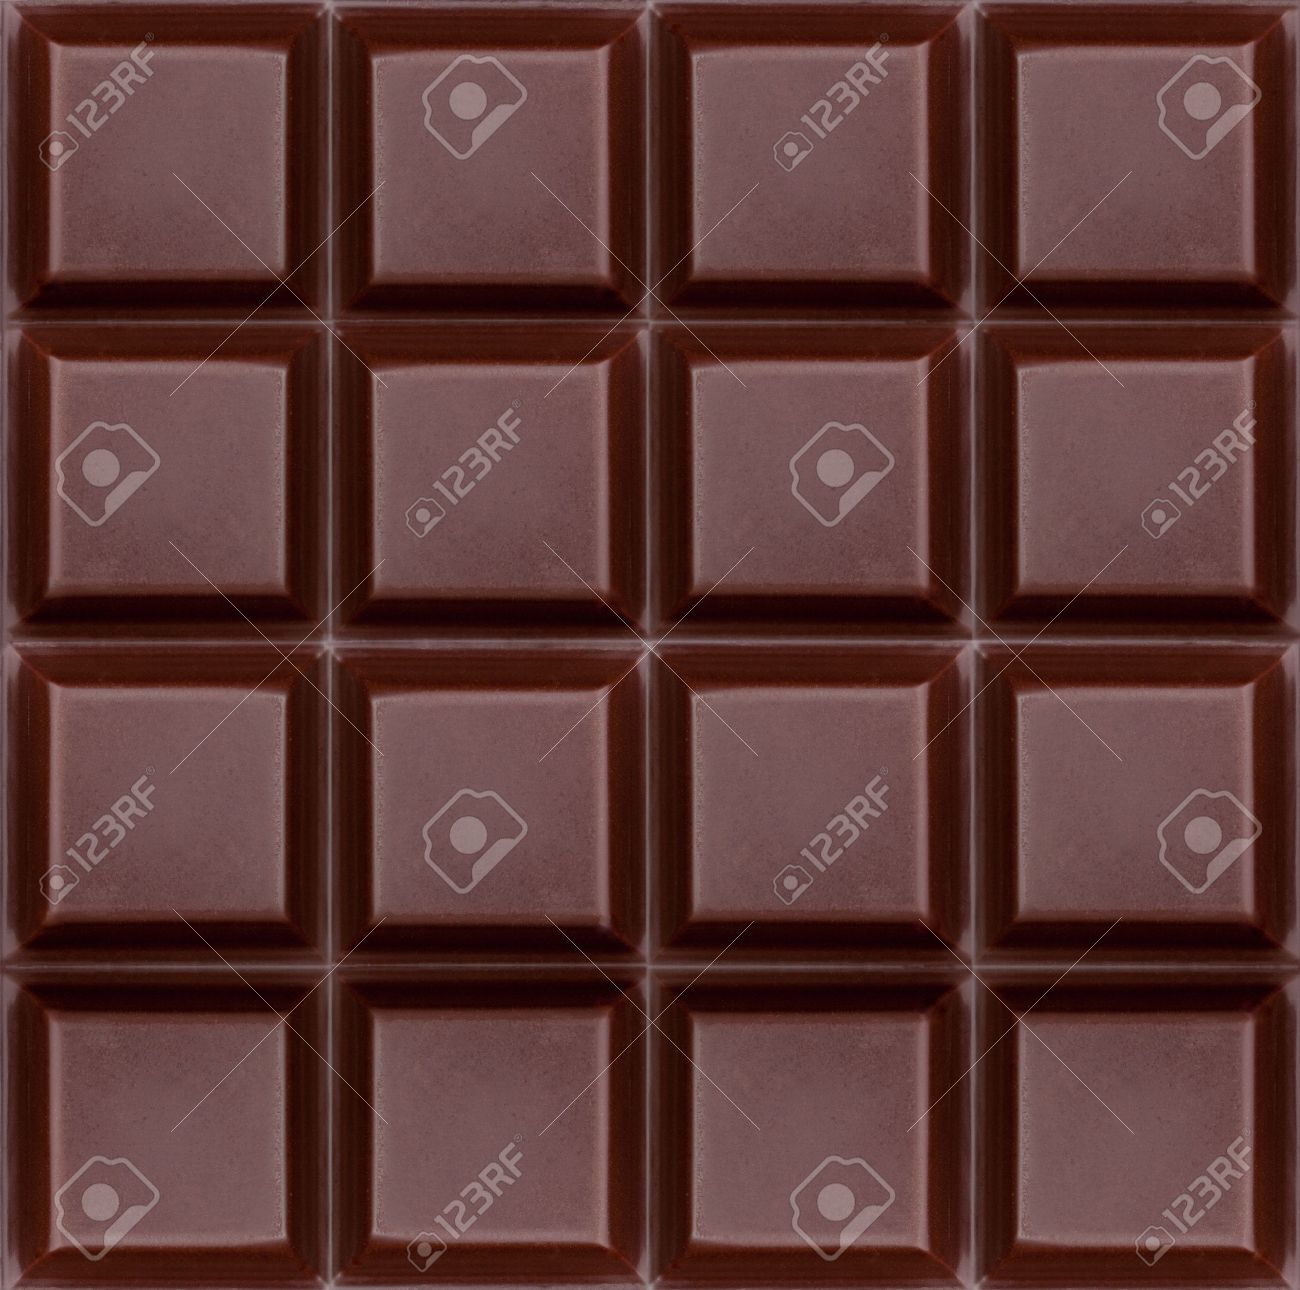 dark chocolate bar as background Standard-Bild - 15879455